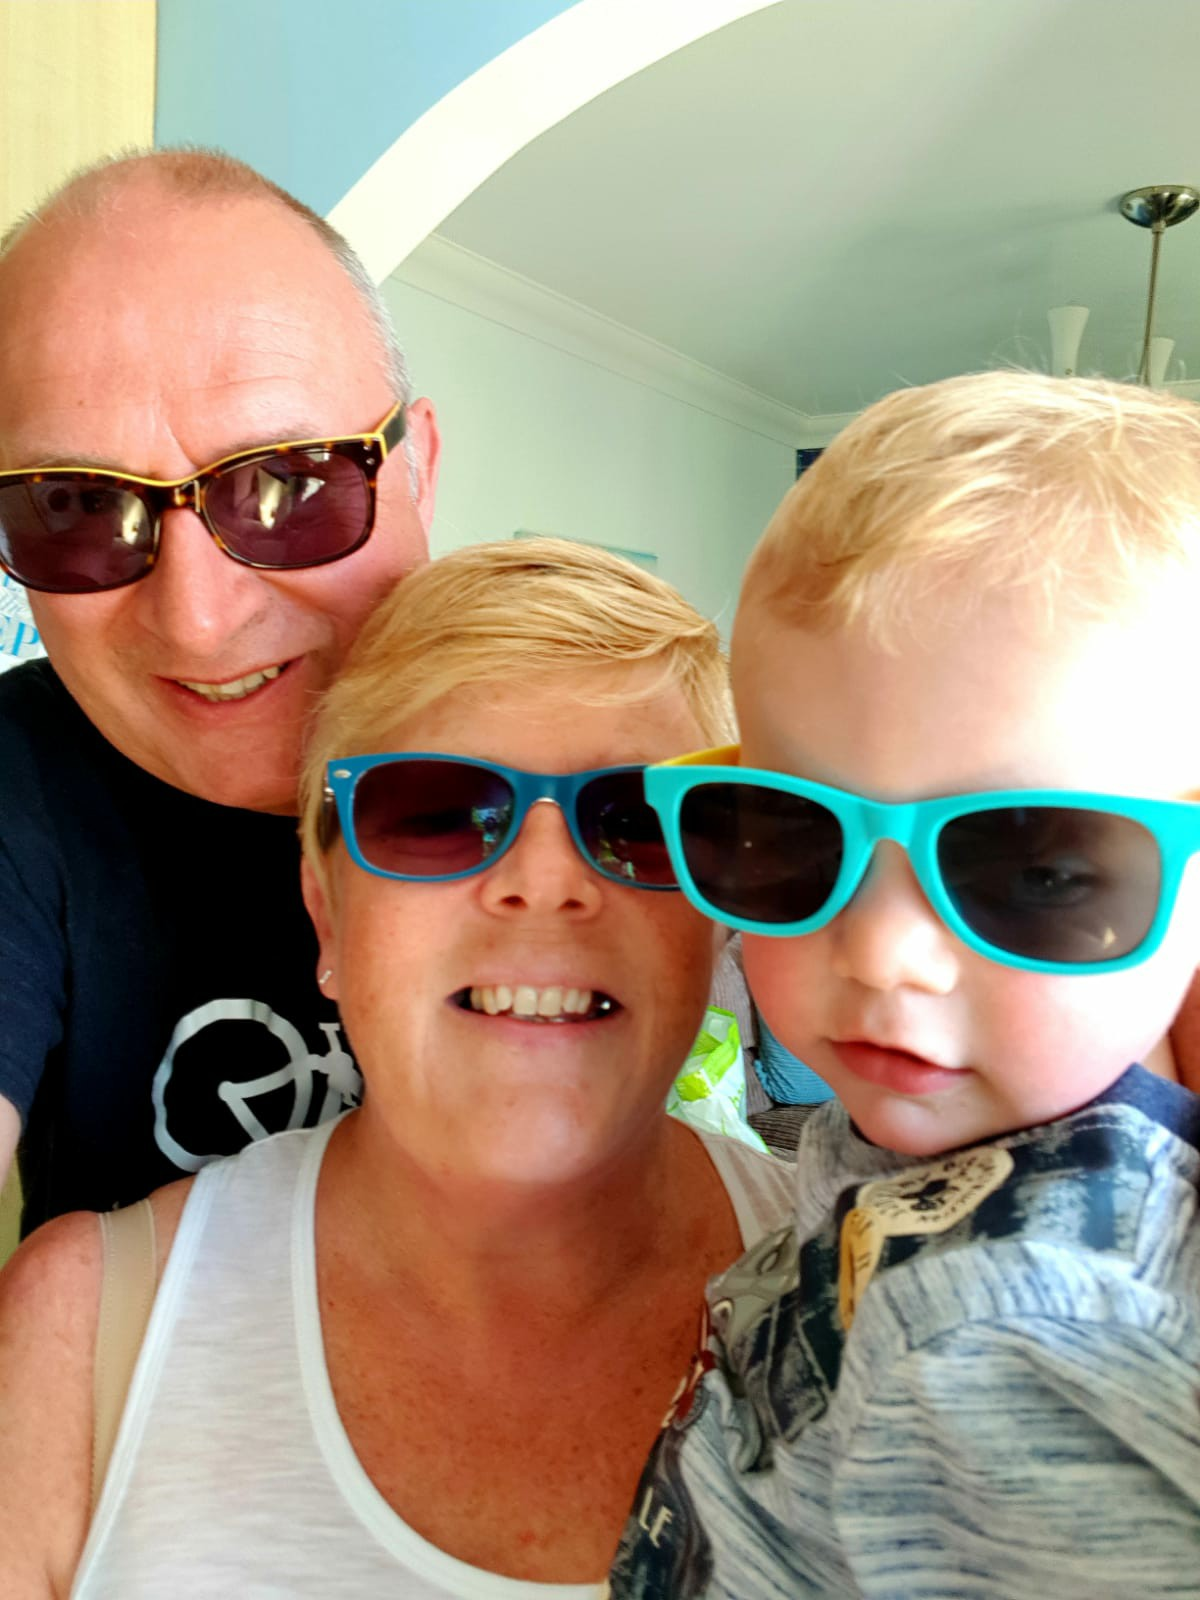 mary gibson partner and grandson with shades on, the celebrant angel aberdeen